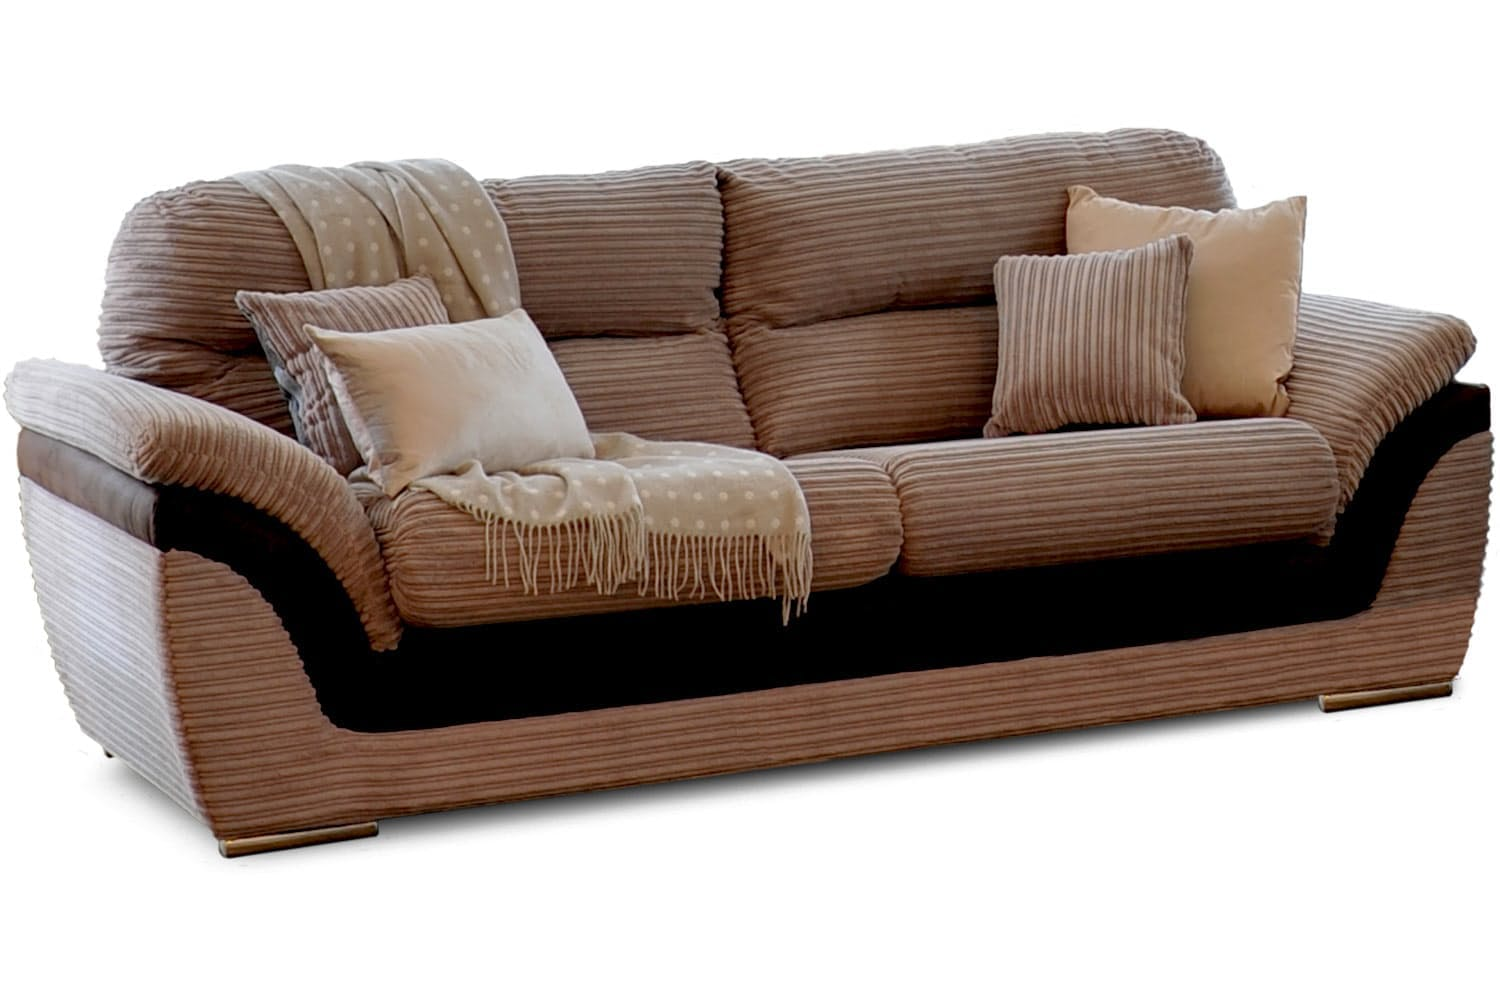 Pippa 3 Seater Sofa